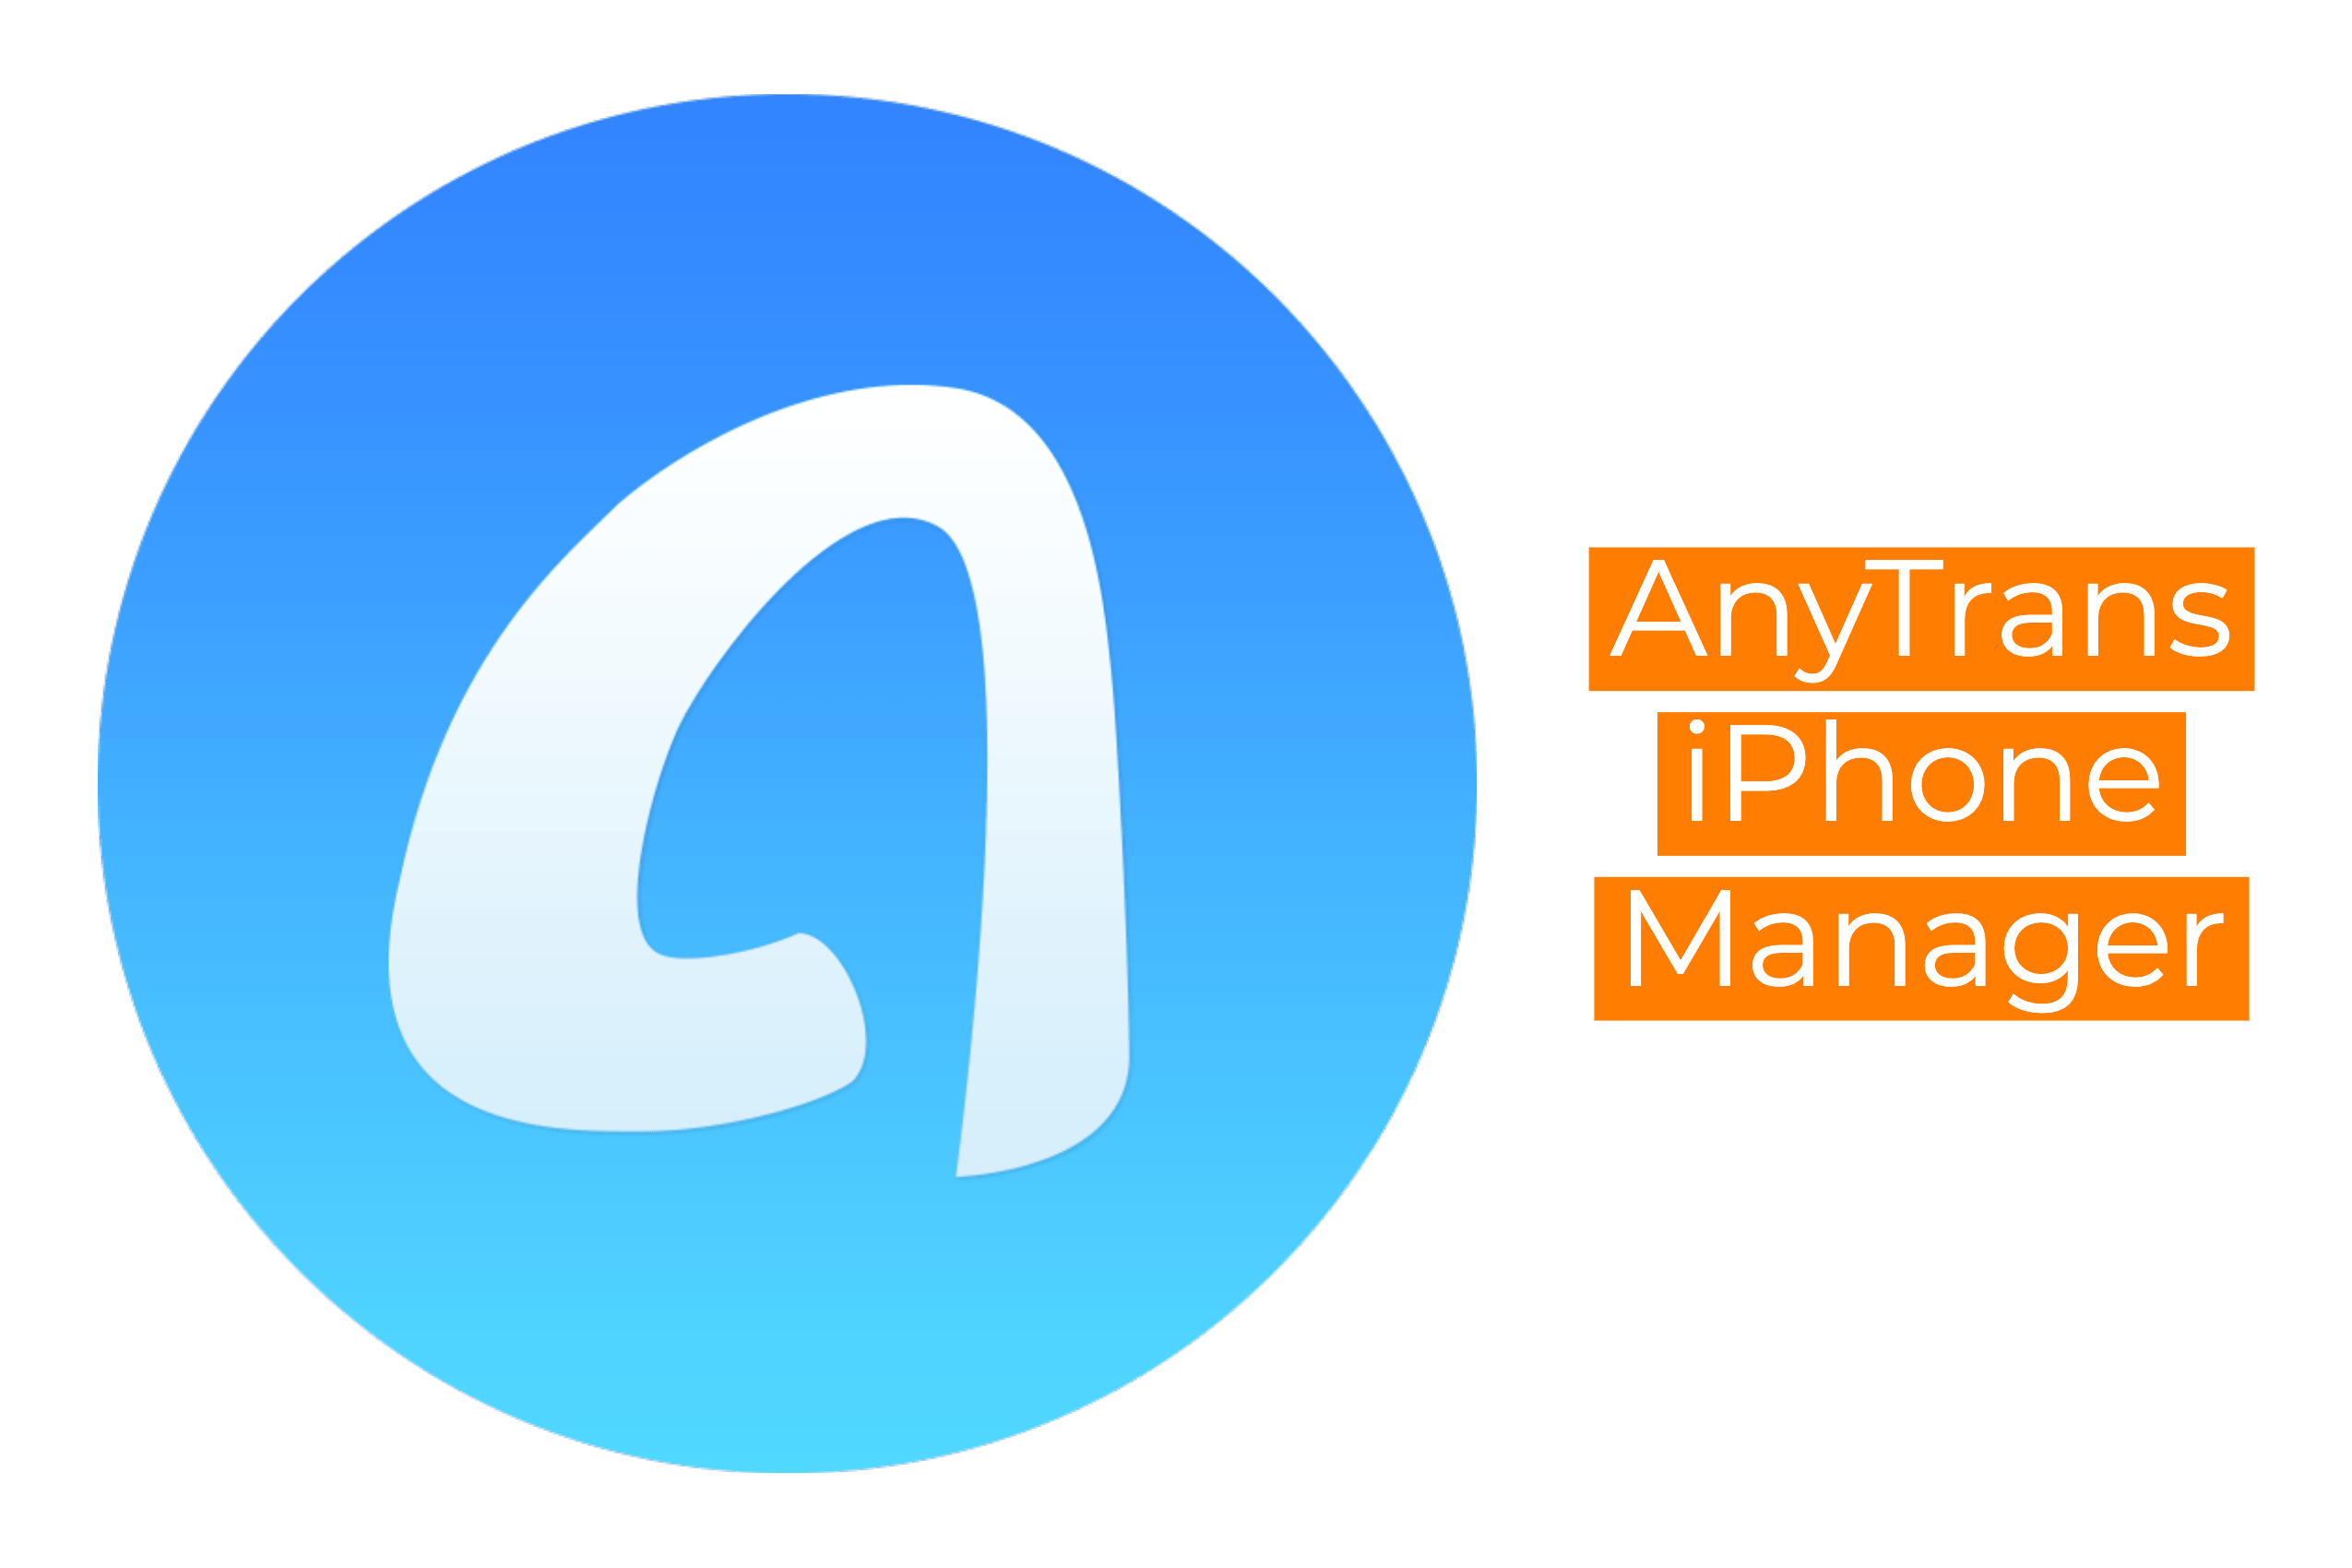 Anytrans iPhone Manager